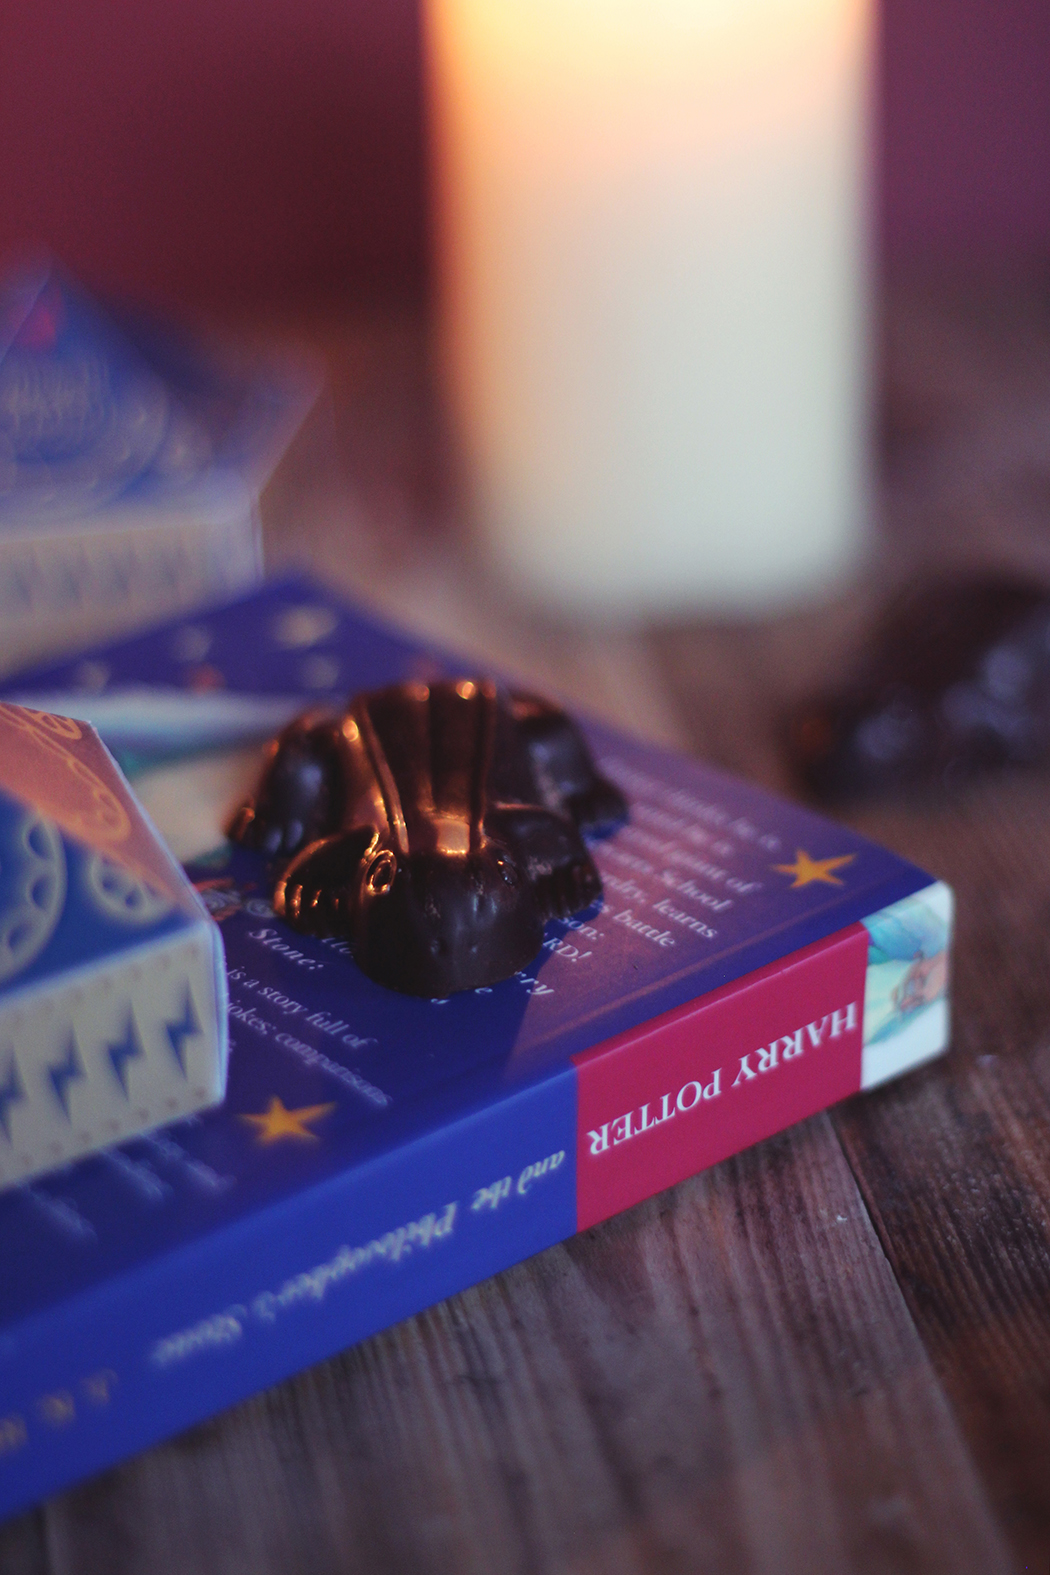 Recette Chocogrenouille - Chocolate frog Harry Potter - Juliette Blog féminin